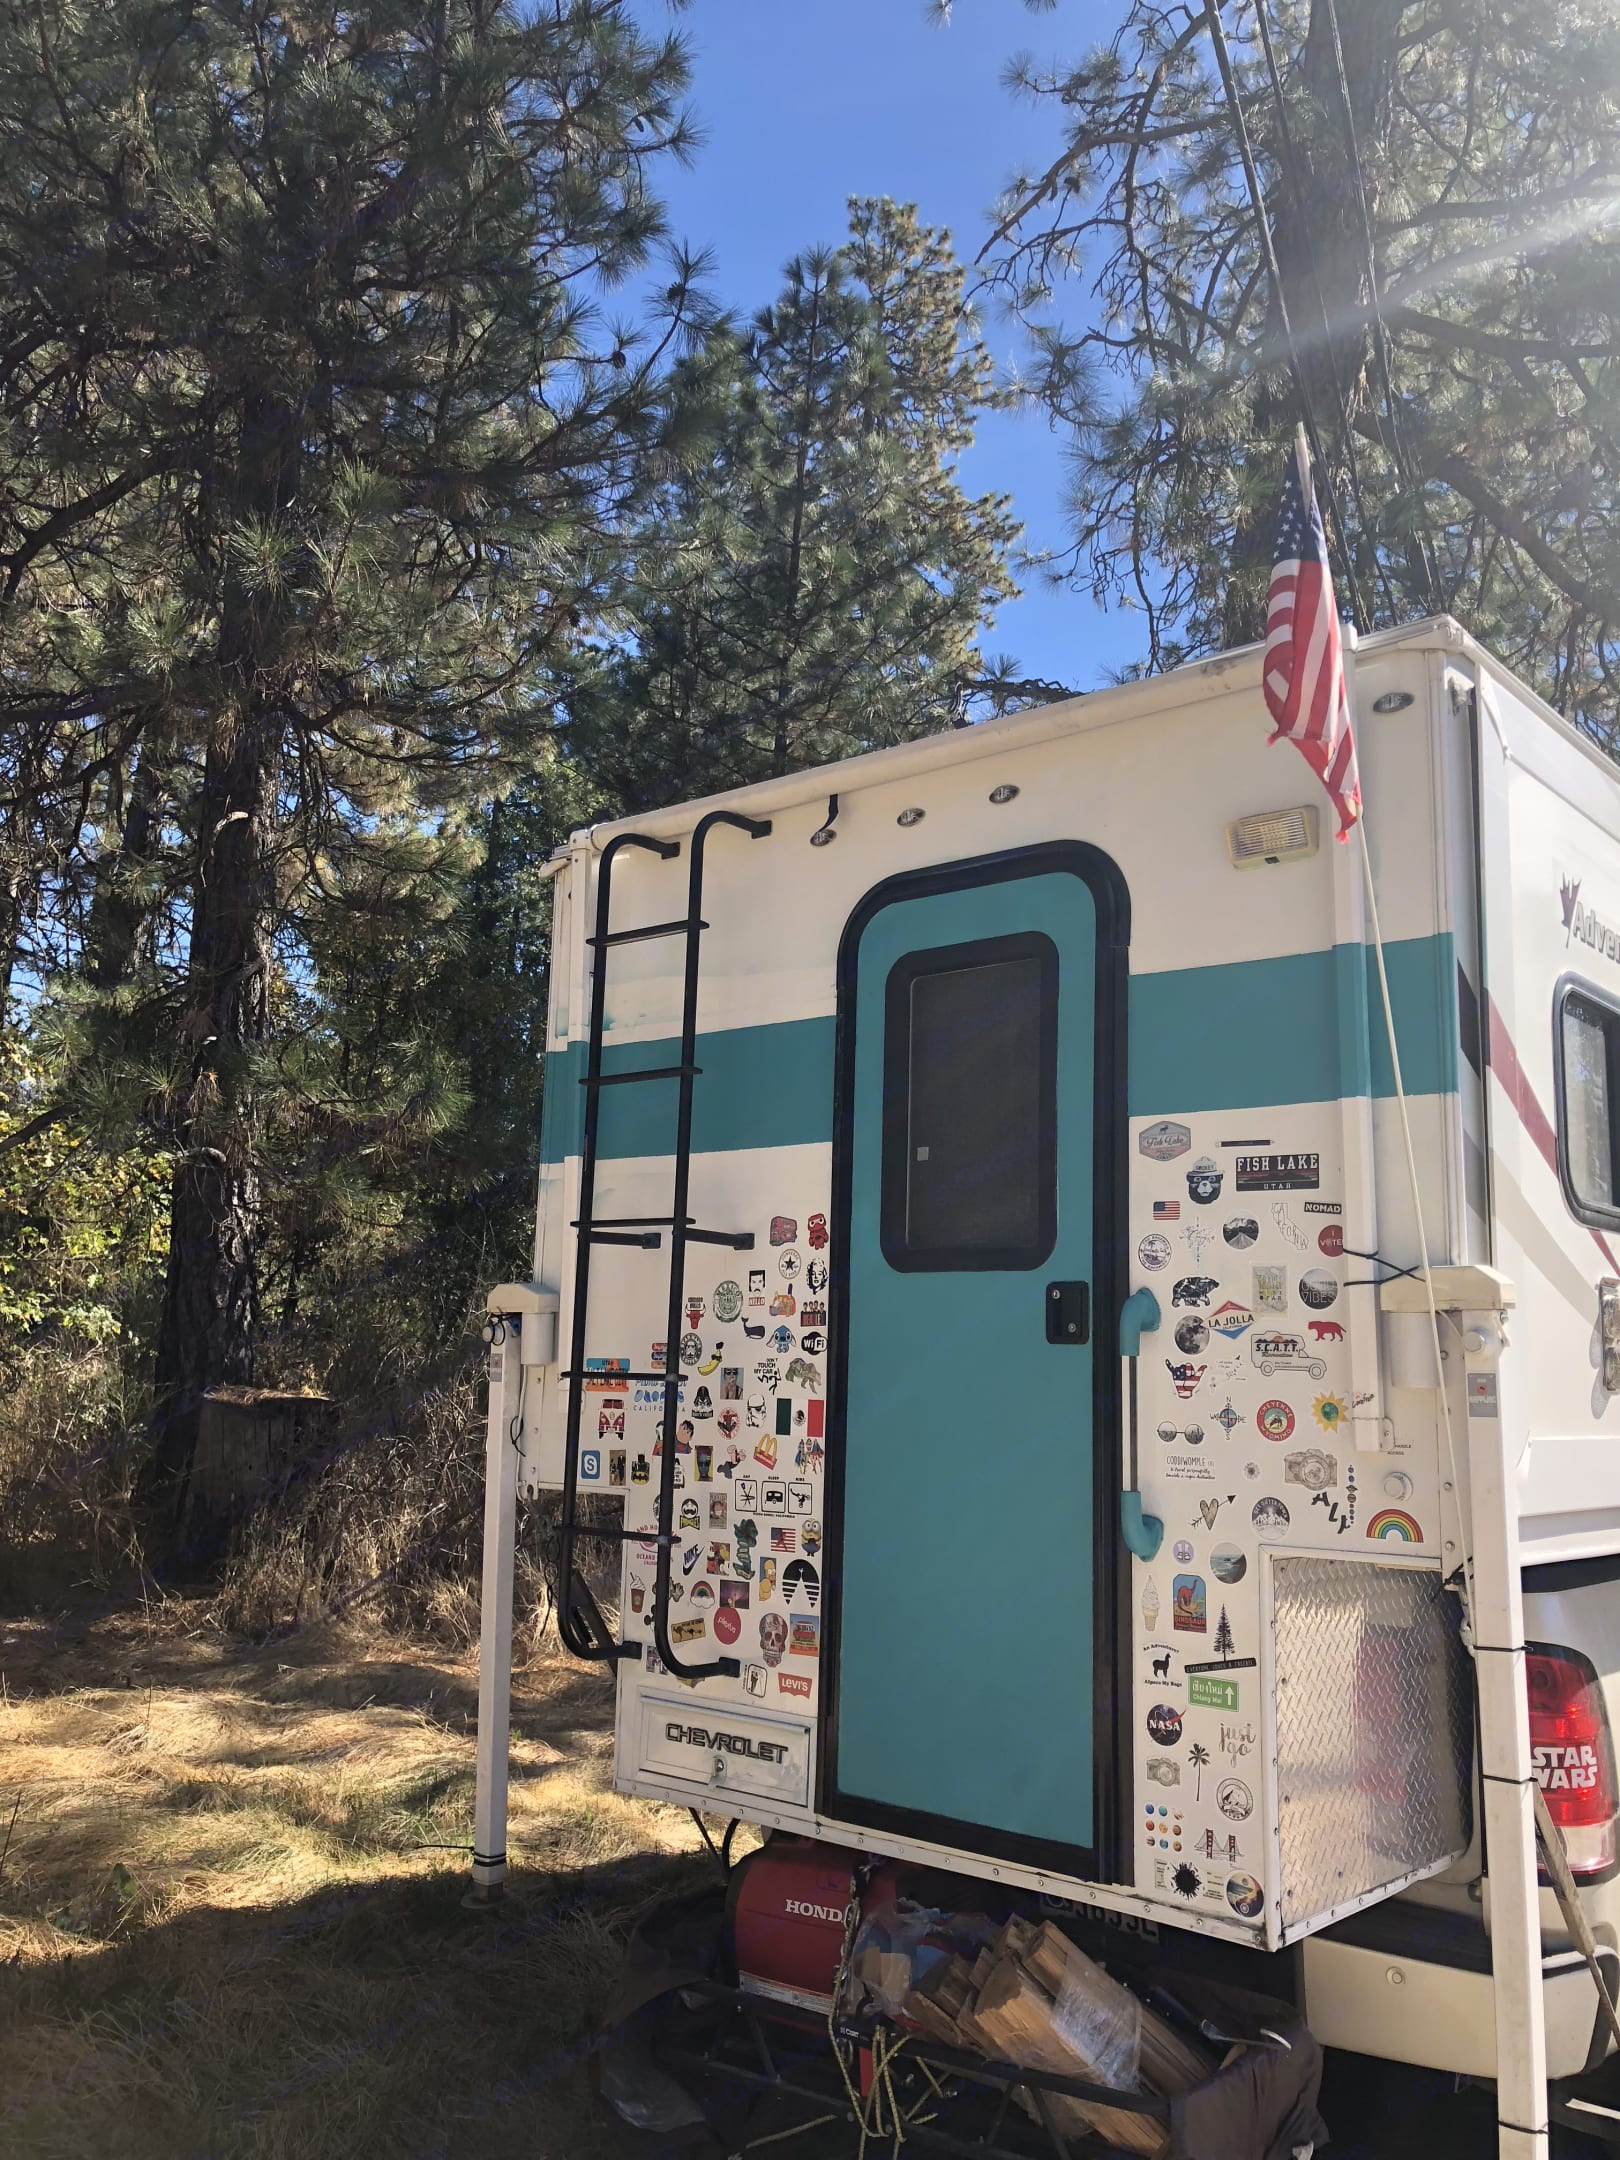 Pull up and camp in the redwoods, or the beach!. Adventurer Lp Adventurer 2013